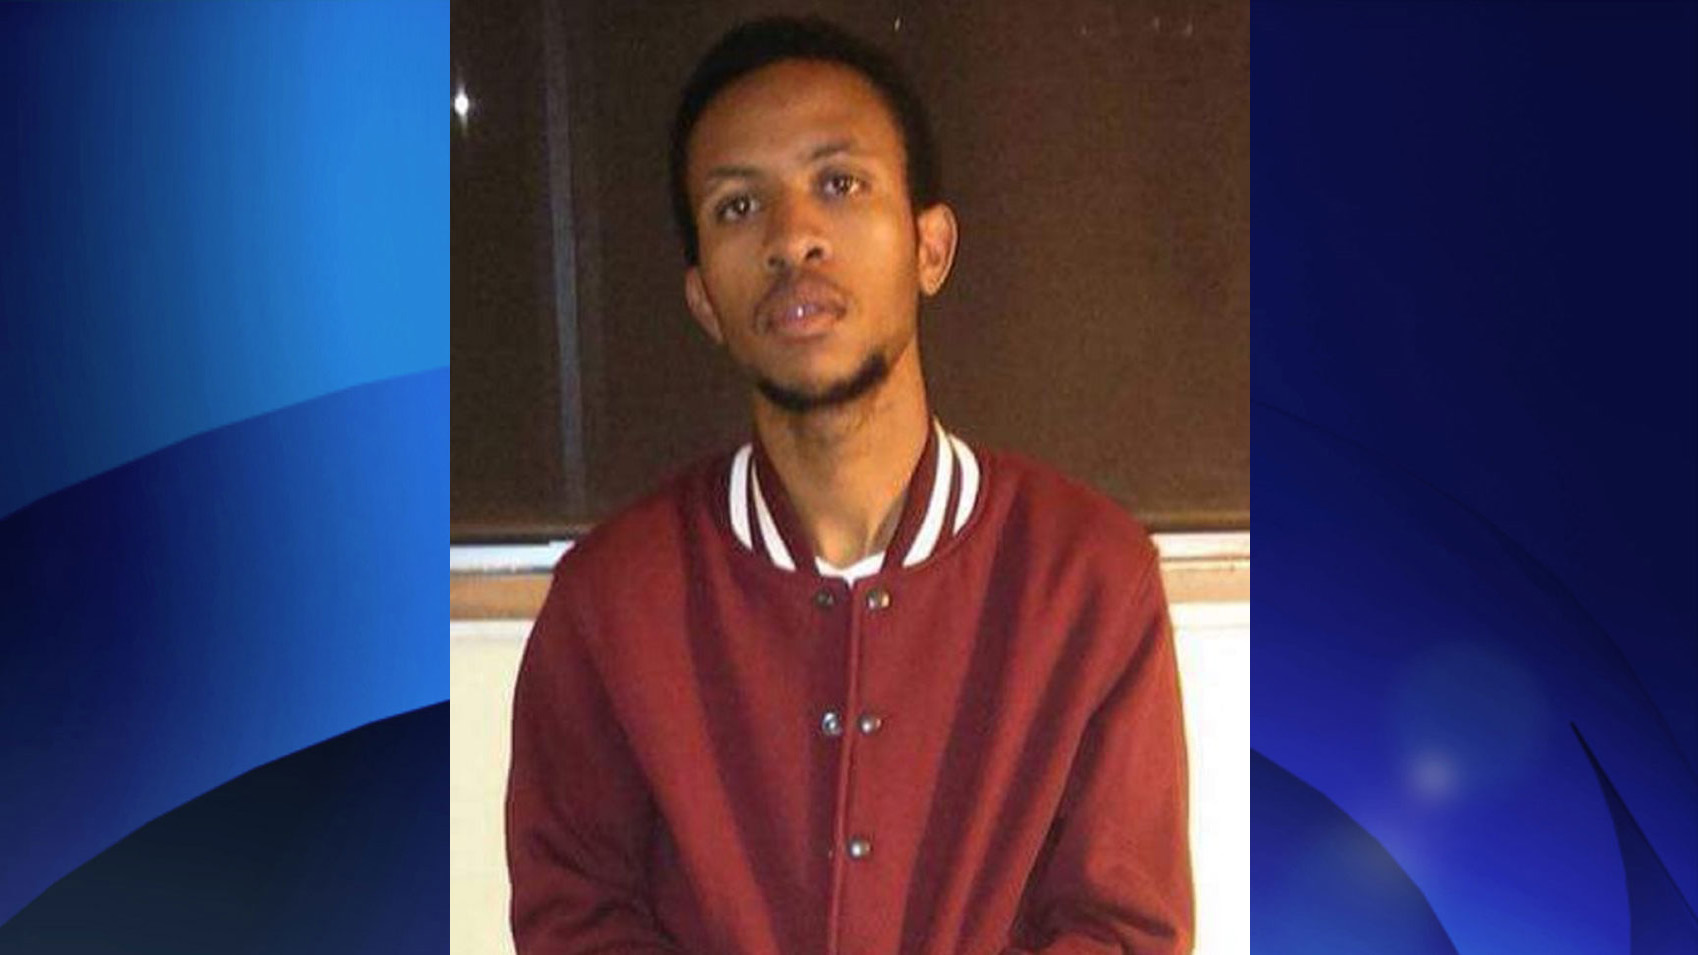 Josiah Haye, 20, was shot on March 20, 2016. He later died in hospital. TORONTO POLICE.